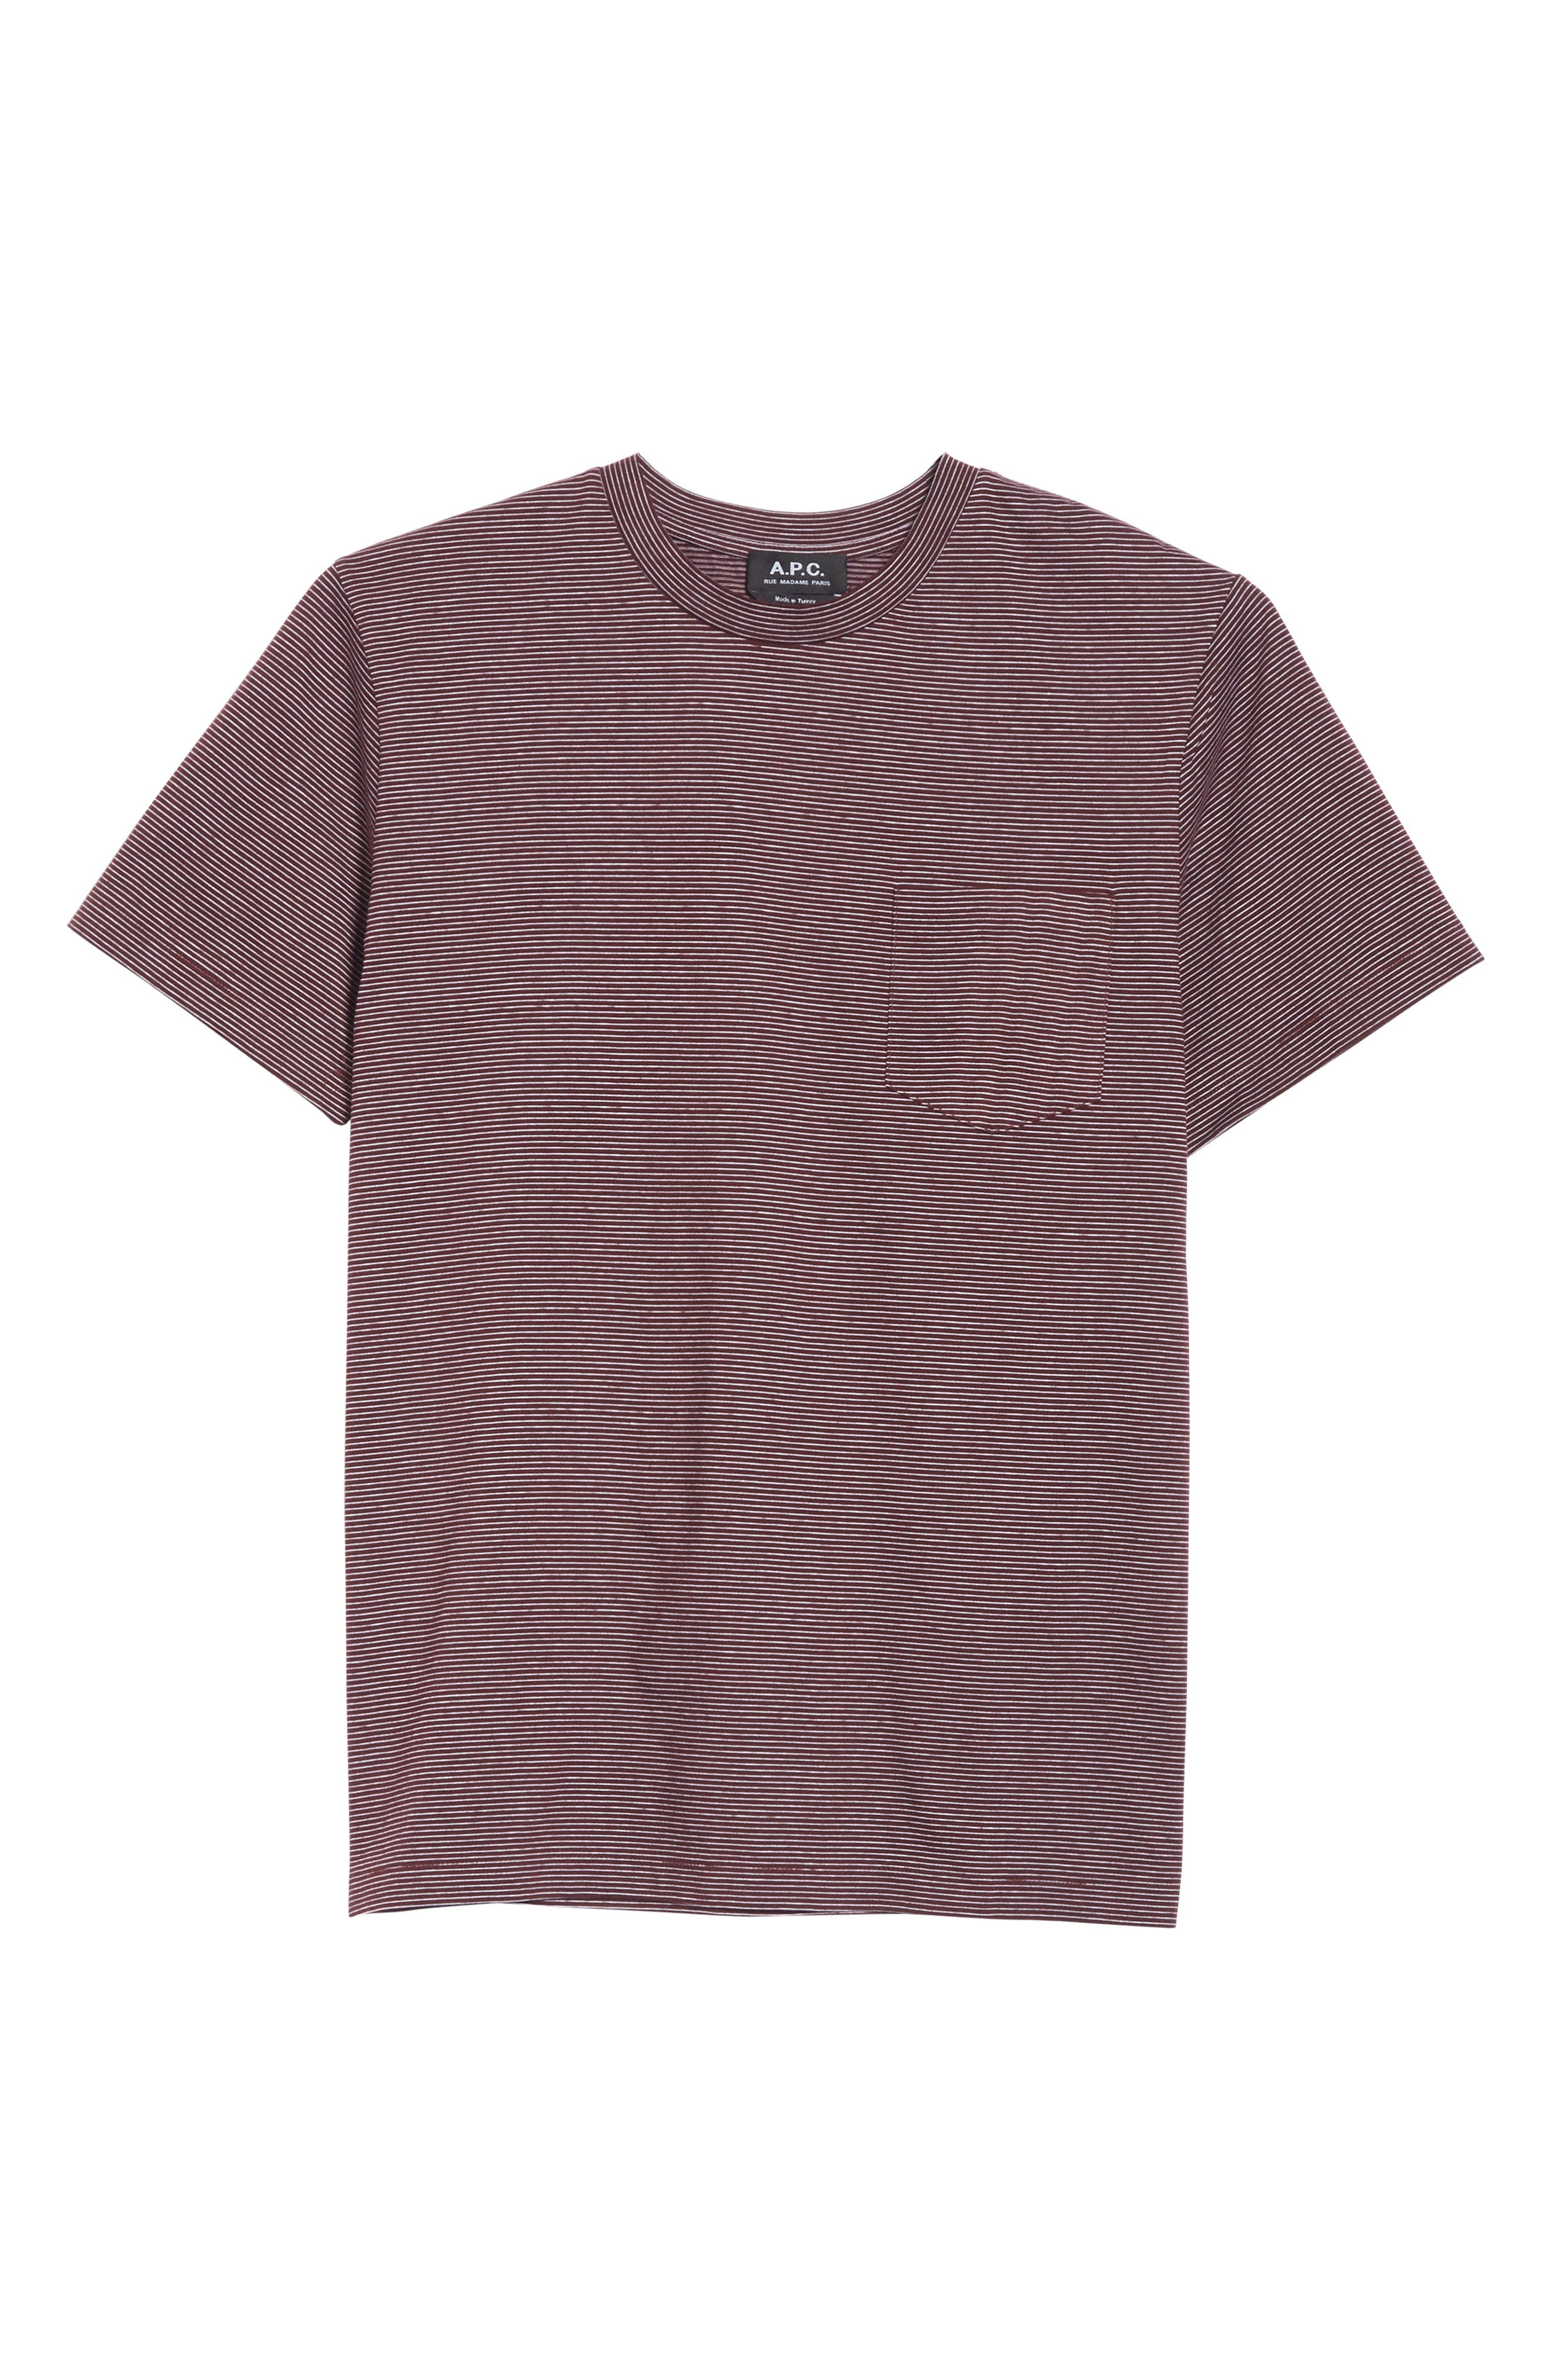 Stripe Pocket T-Shirt,                             Alternate thumbnail 6, color,                             BURGUNDY